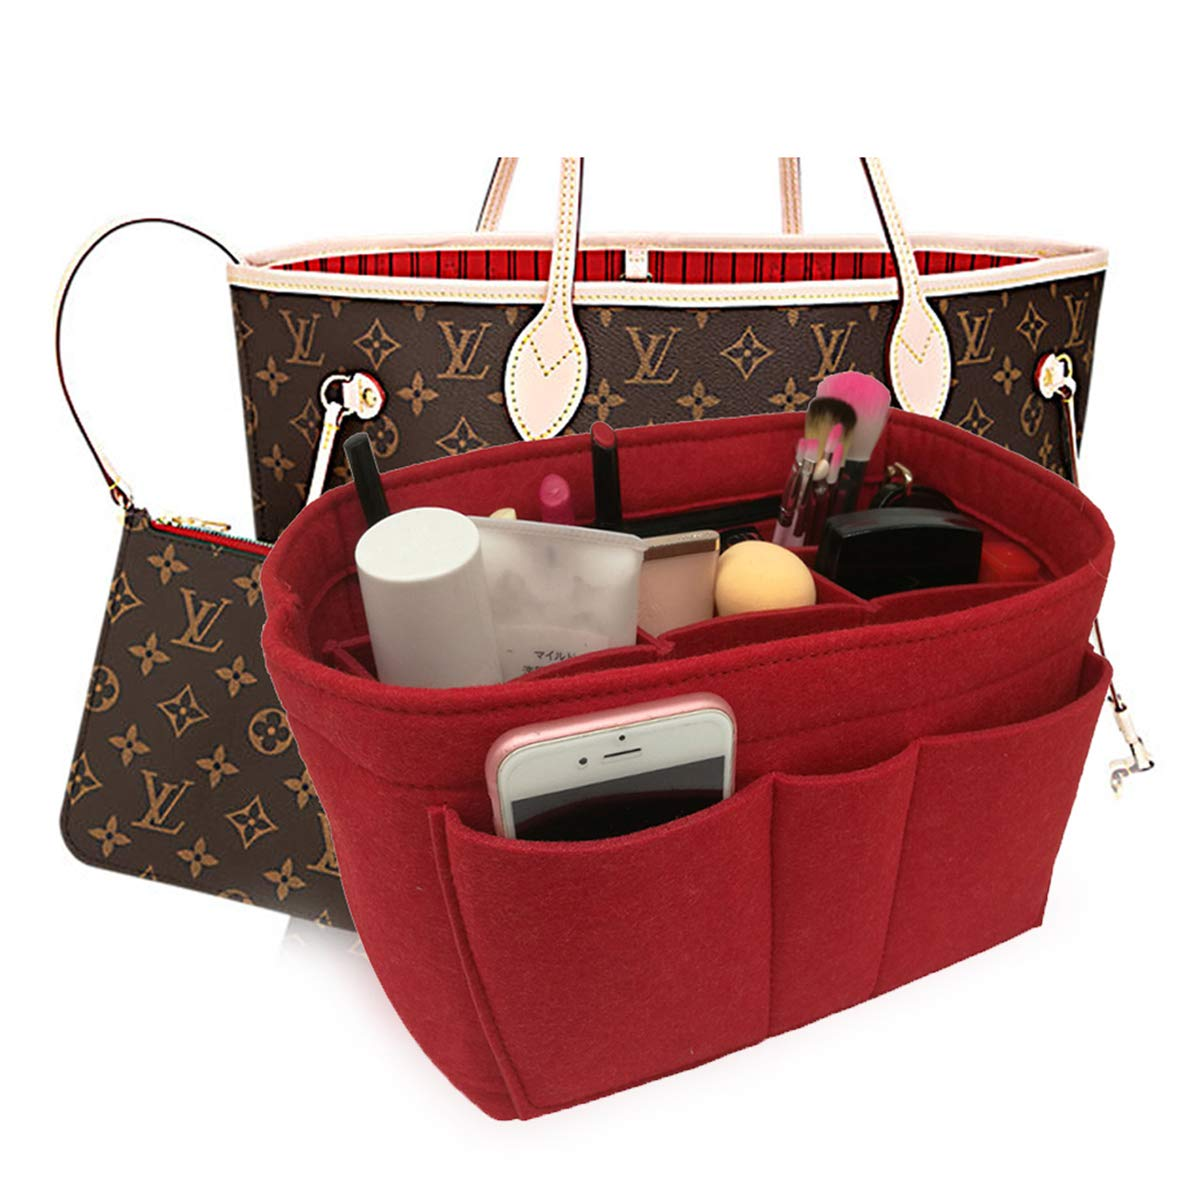 9f25c398ff12 Felt Insert Bag Organizer Bag In Bag For Handbag Purse Organizer Fits Speedy  Neverfull product image